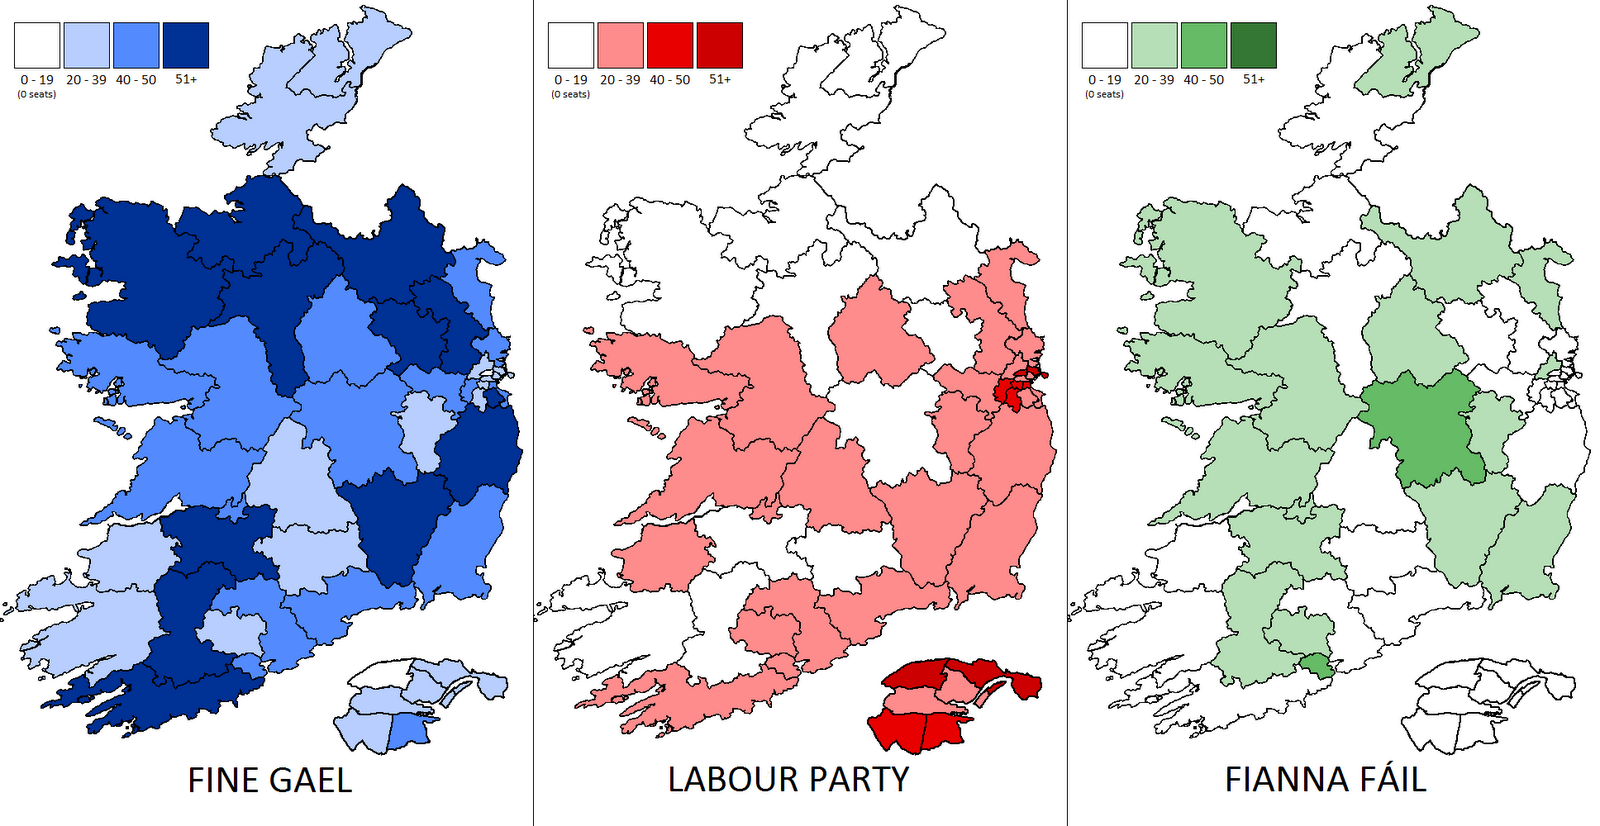 an overview of the general election in the political customs Prior to a general election, there is a selection process to determine which candidate will appear on the ballot for a given political party in the nationwide general election political parties generally hold national conventions at which a group of delegates collectively decide upon which candidate they will run for the presidency.